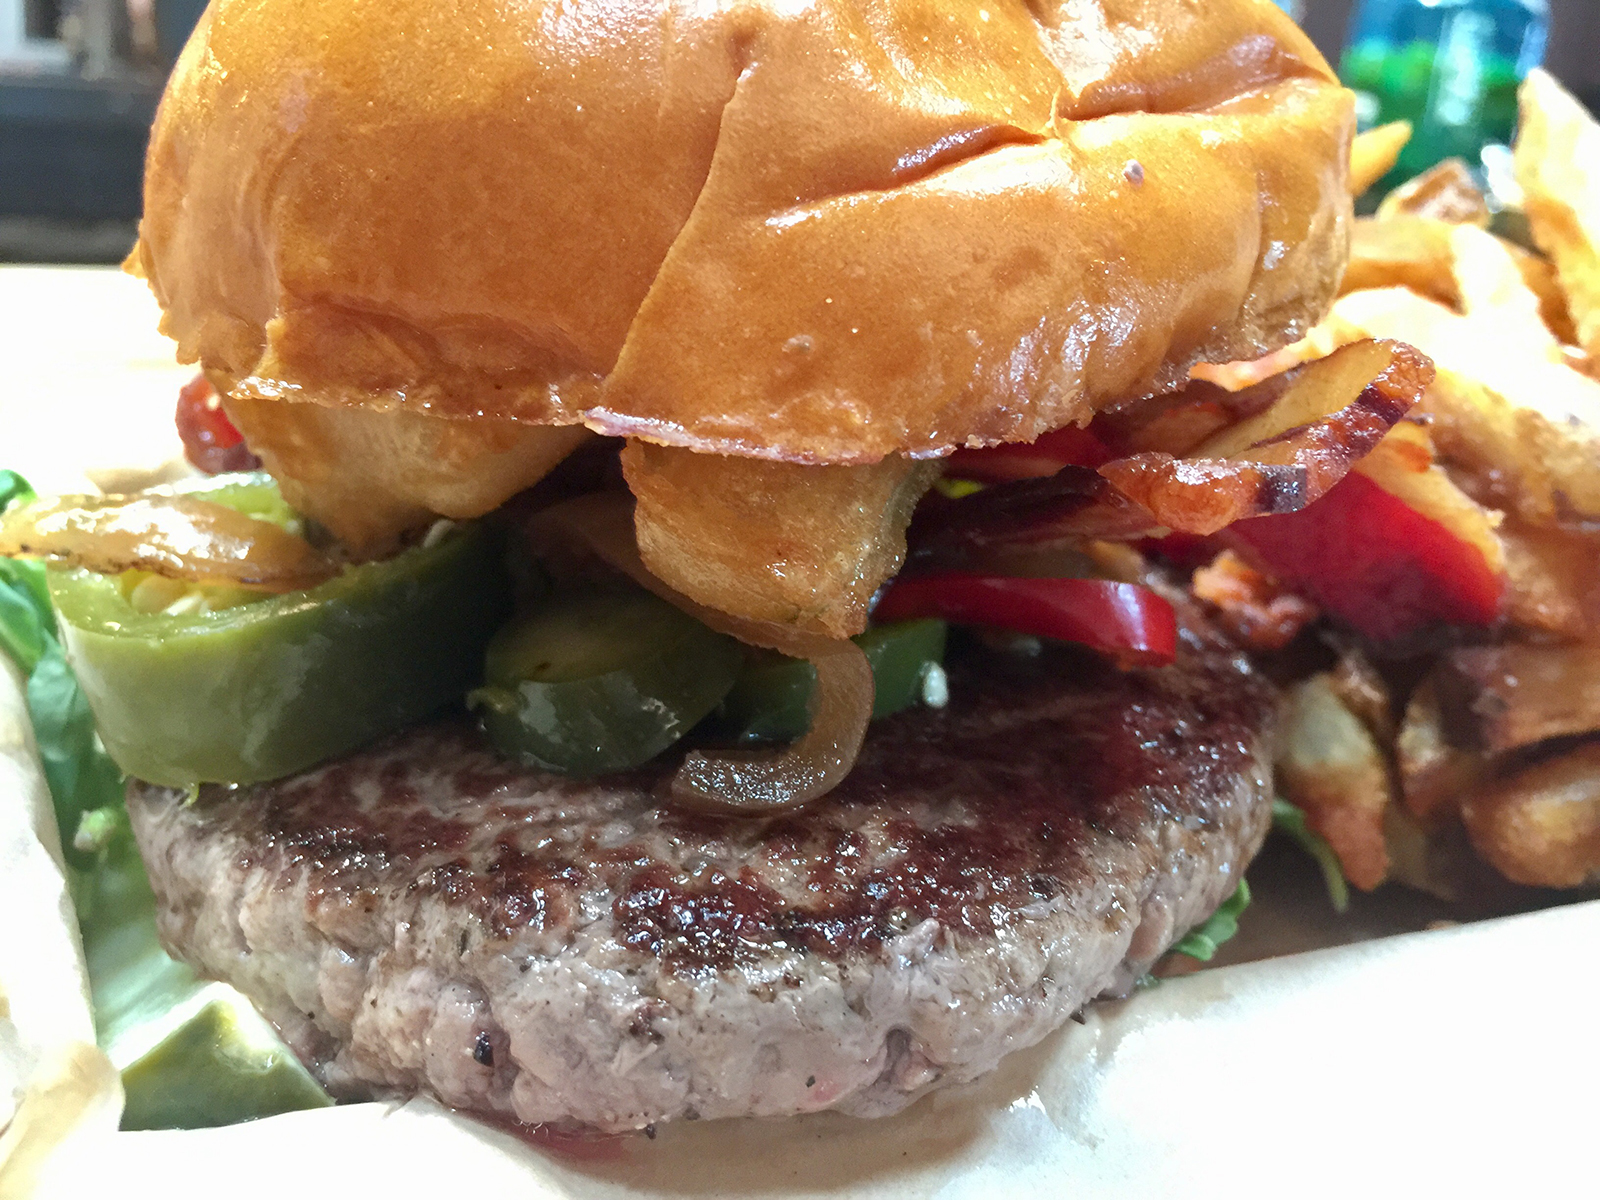 Blast Pig Burger from Industry Public House